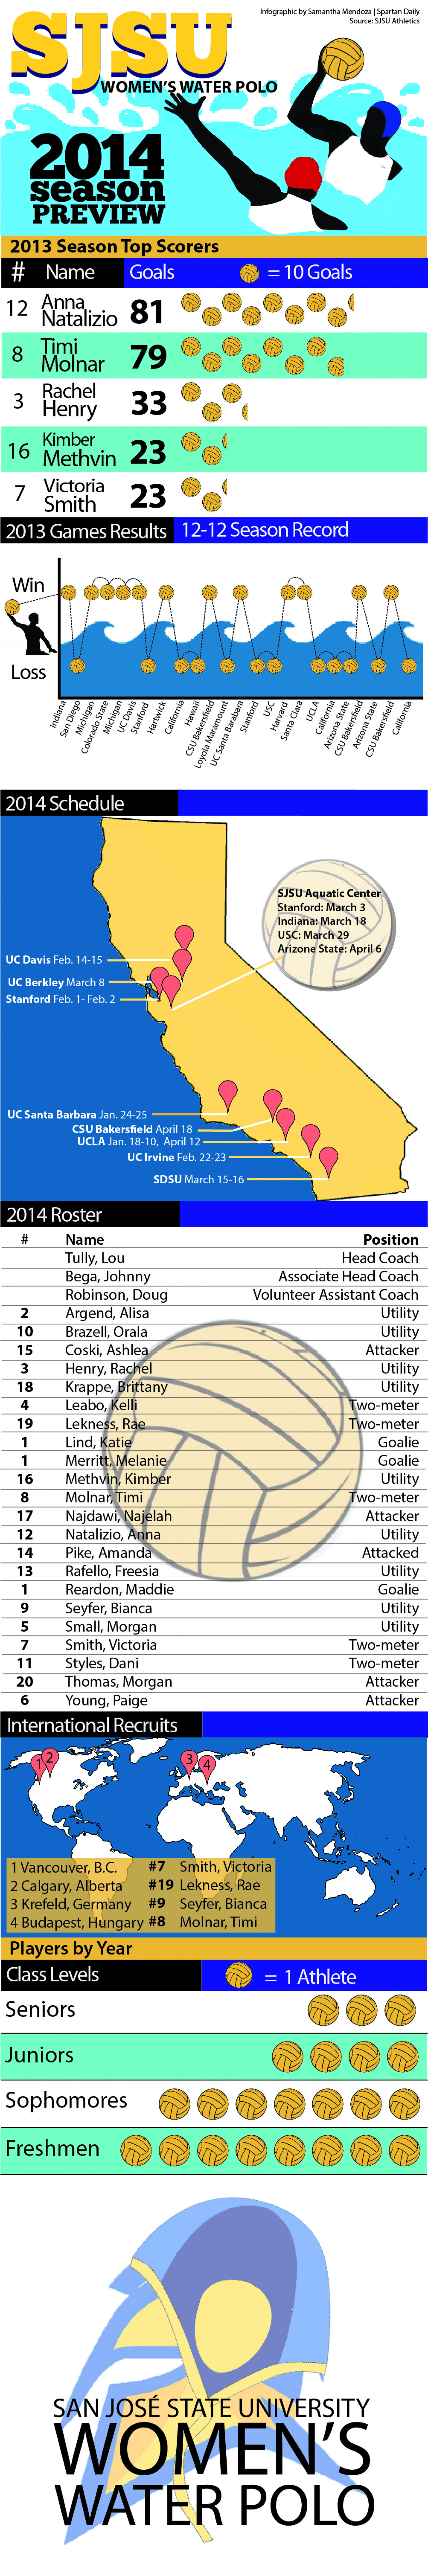 SJSU Women's Water Polo 2014 Season Preview Infographic